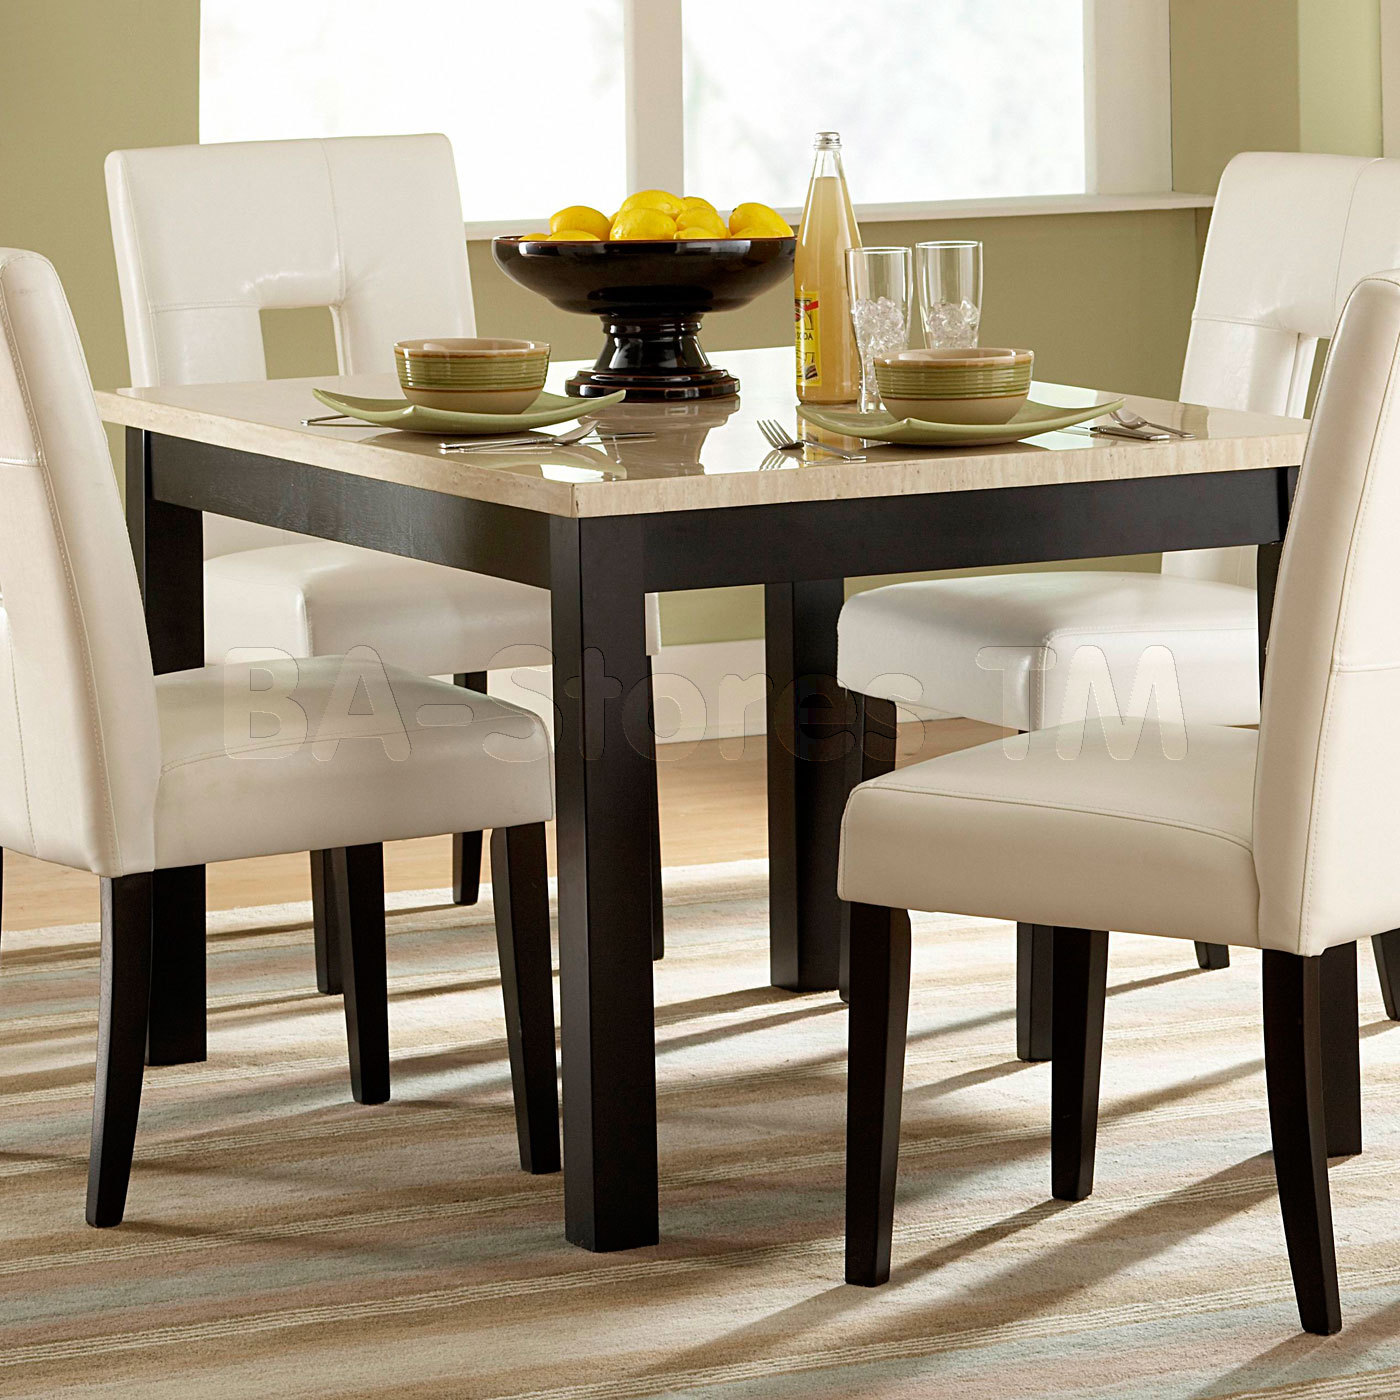 White Dining Room Table And Chairs: Square Dining Table For 4